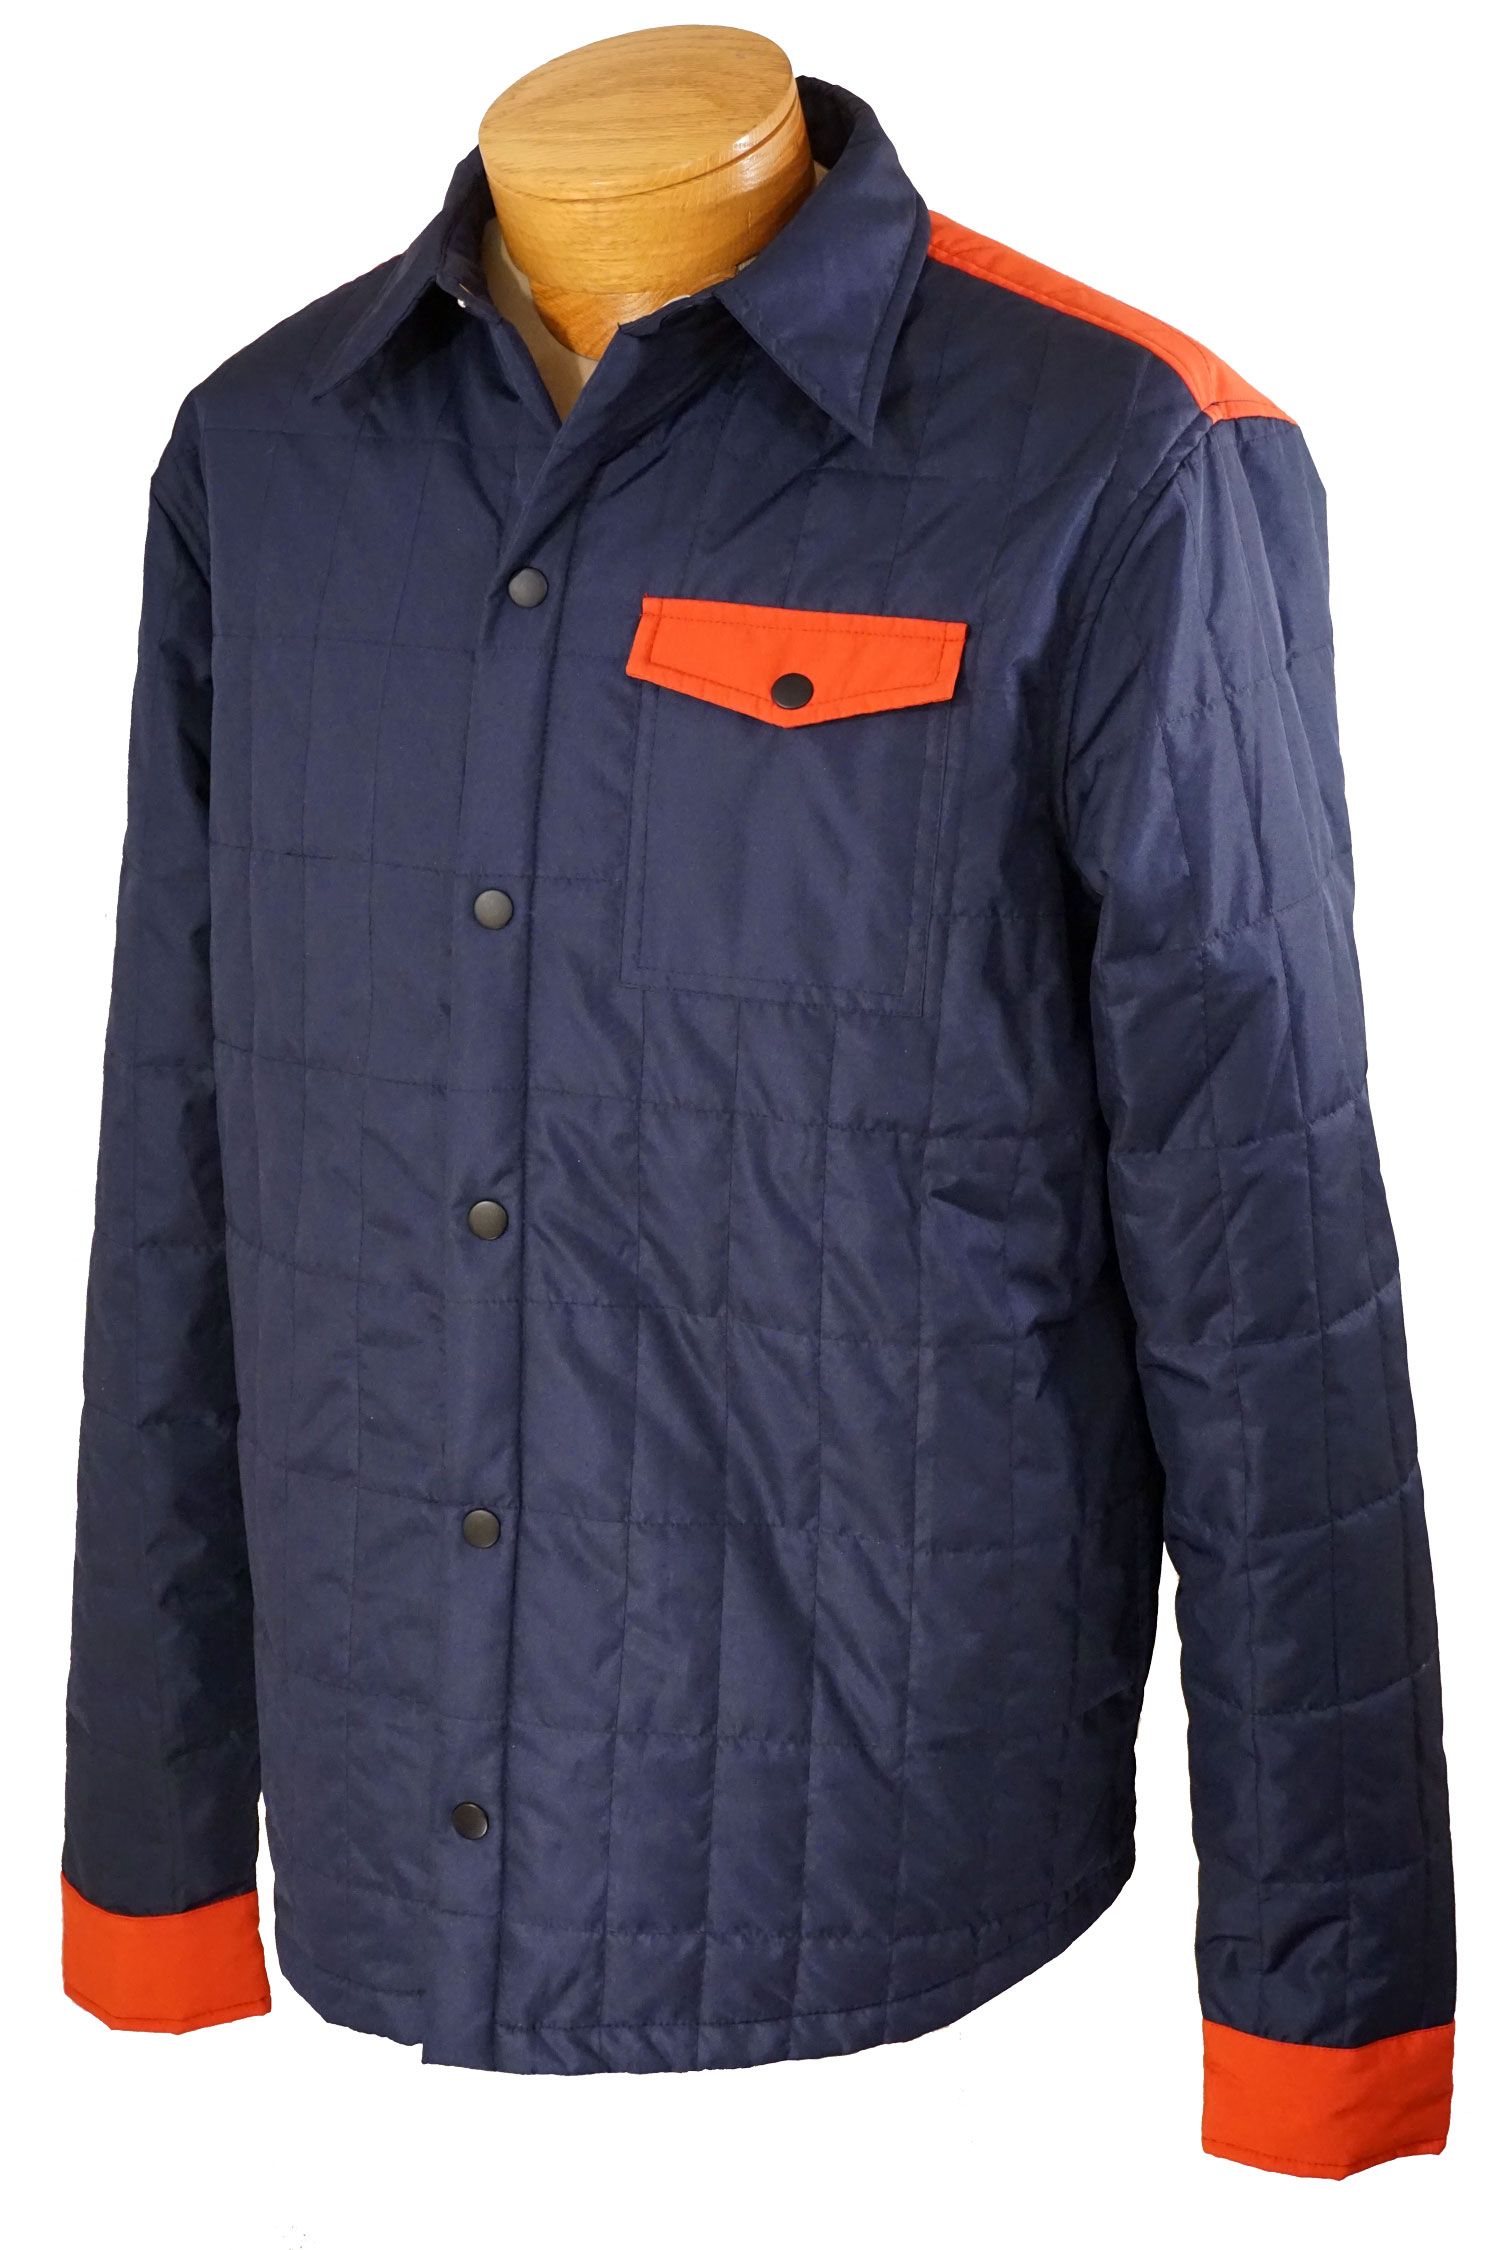 JacketSupplyCo-Craven-ShirtJacket-Shacket-FrontAngle.jpg